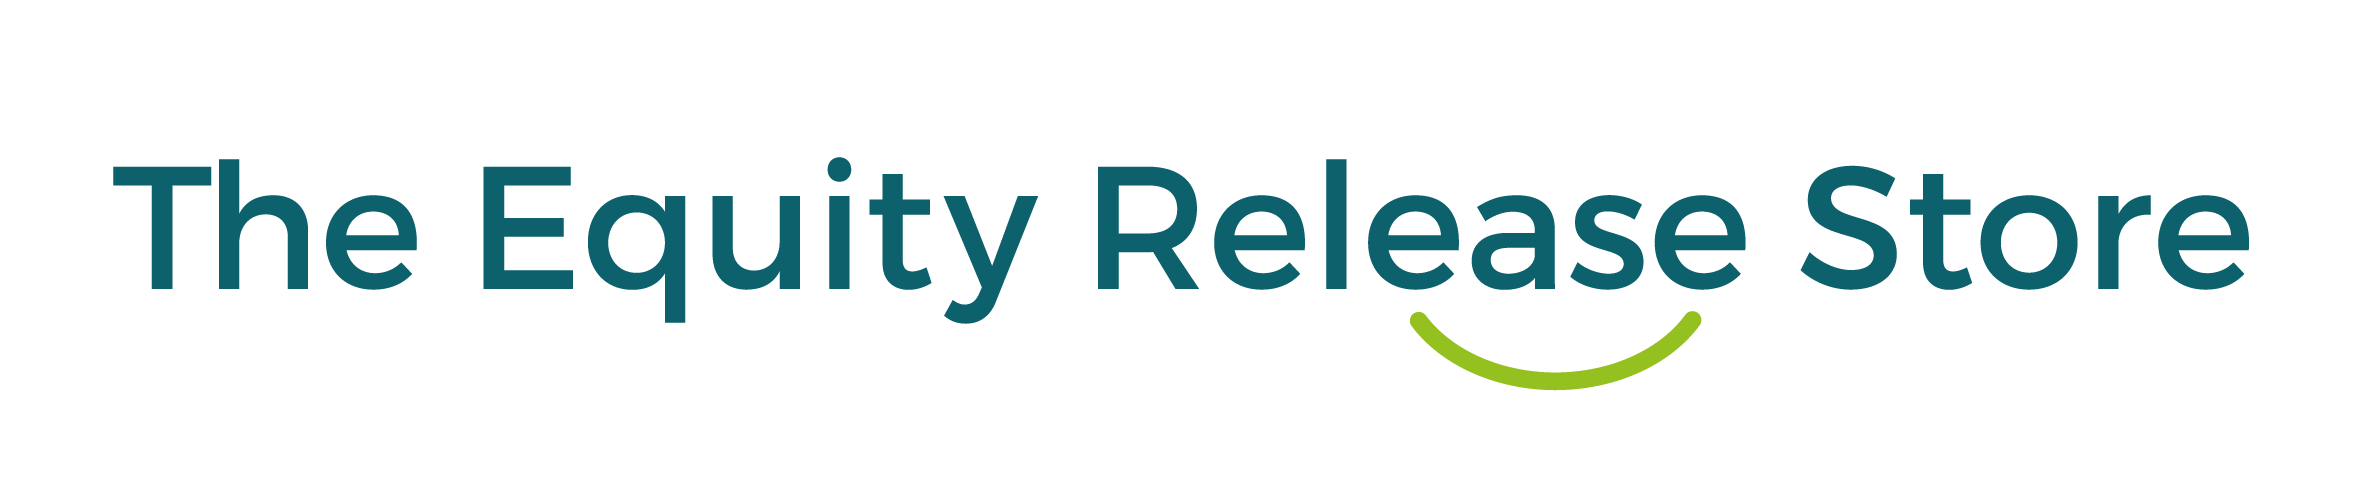 The Equity Release Store